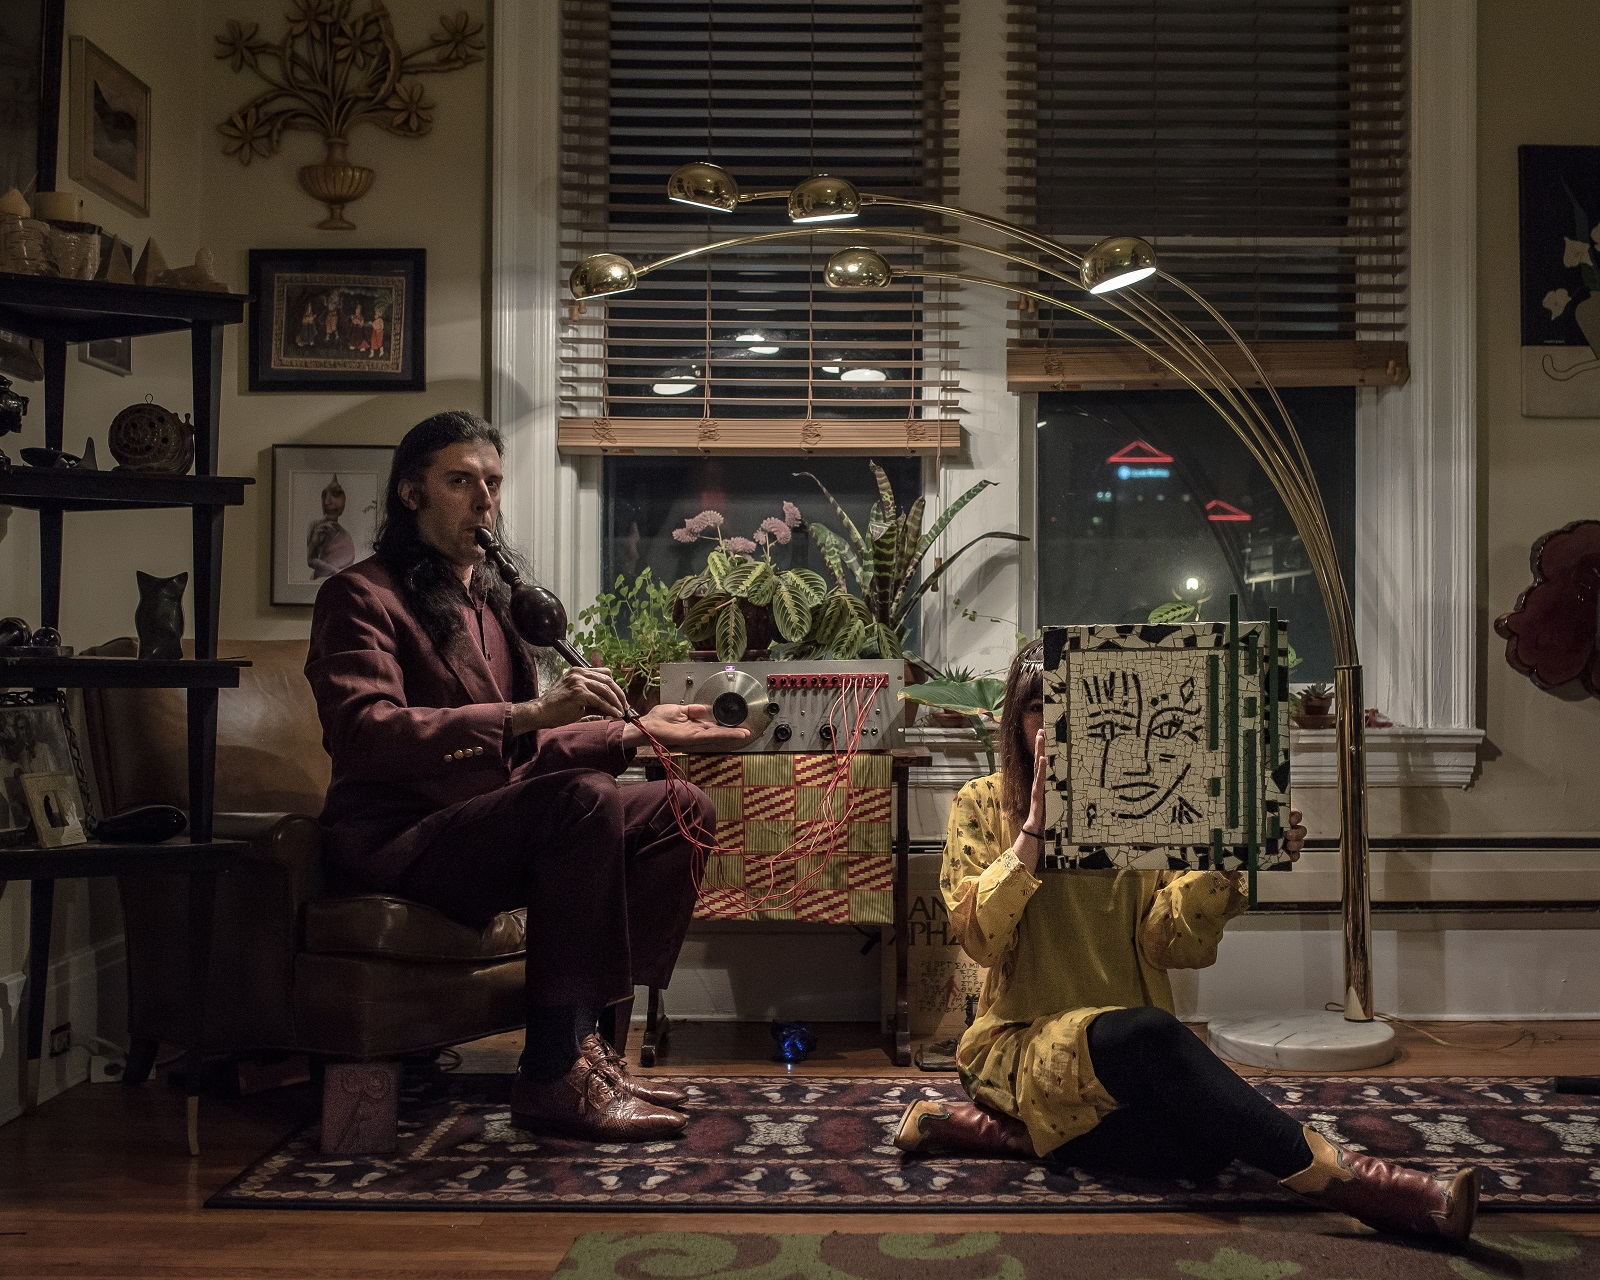 The lure of wonder: Nola Ranallo's rebirth inspires Cages' 'A